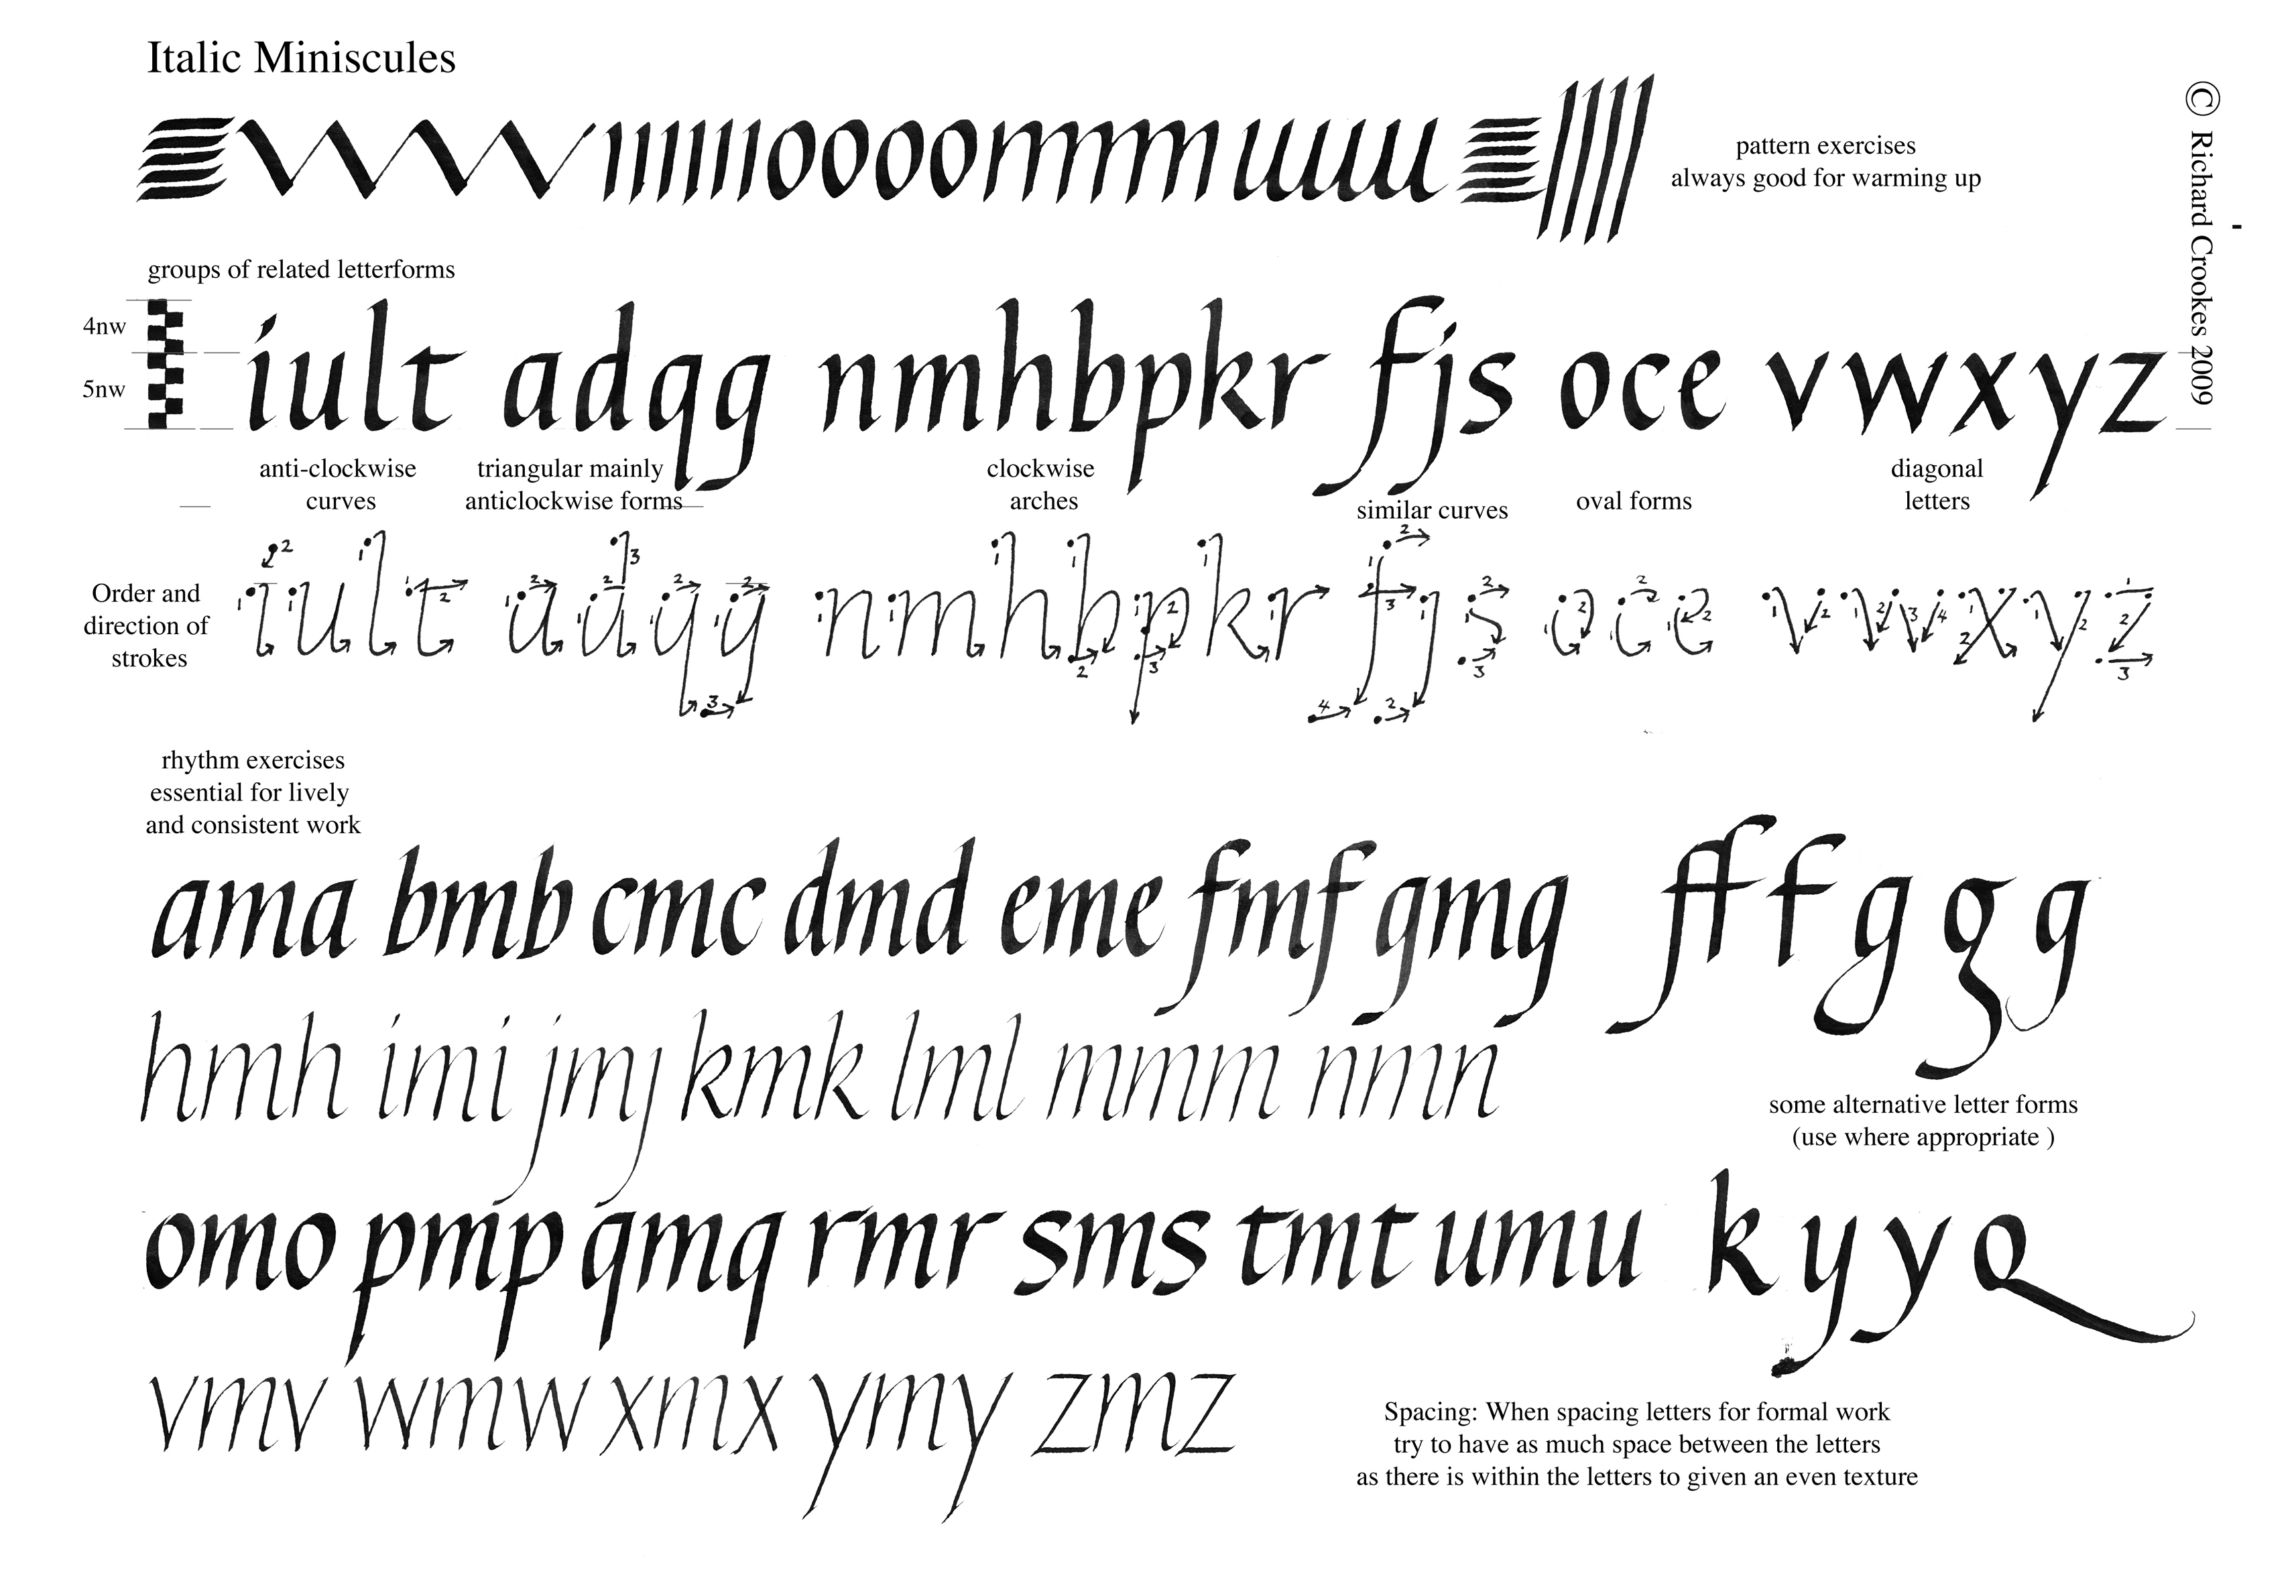 Worksheets Calligraphy Practice Worksheets italic worksheets with thanks to richard crookes updated may if you would like see more of richards work and download these have a look at his website also he has videos on yo